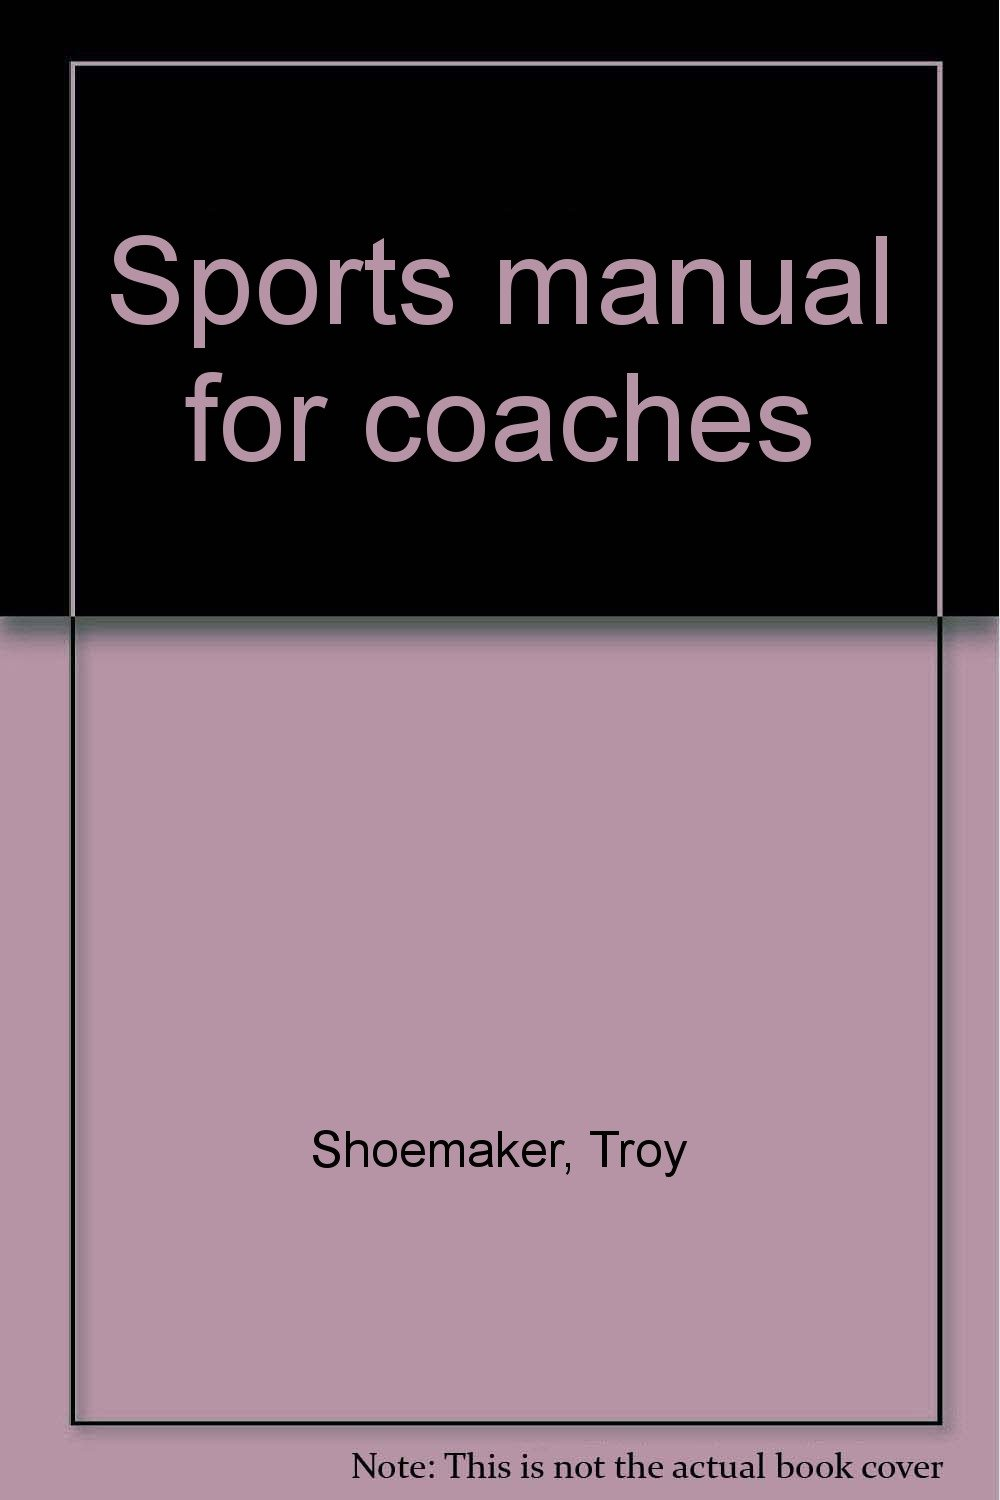 Sports manual for coaches